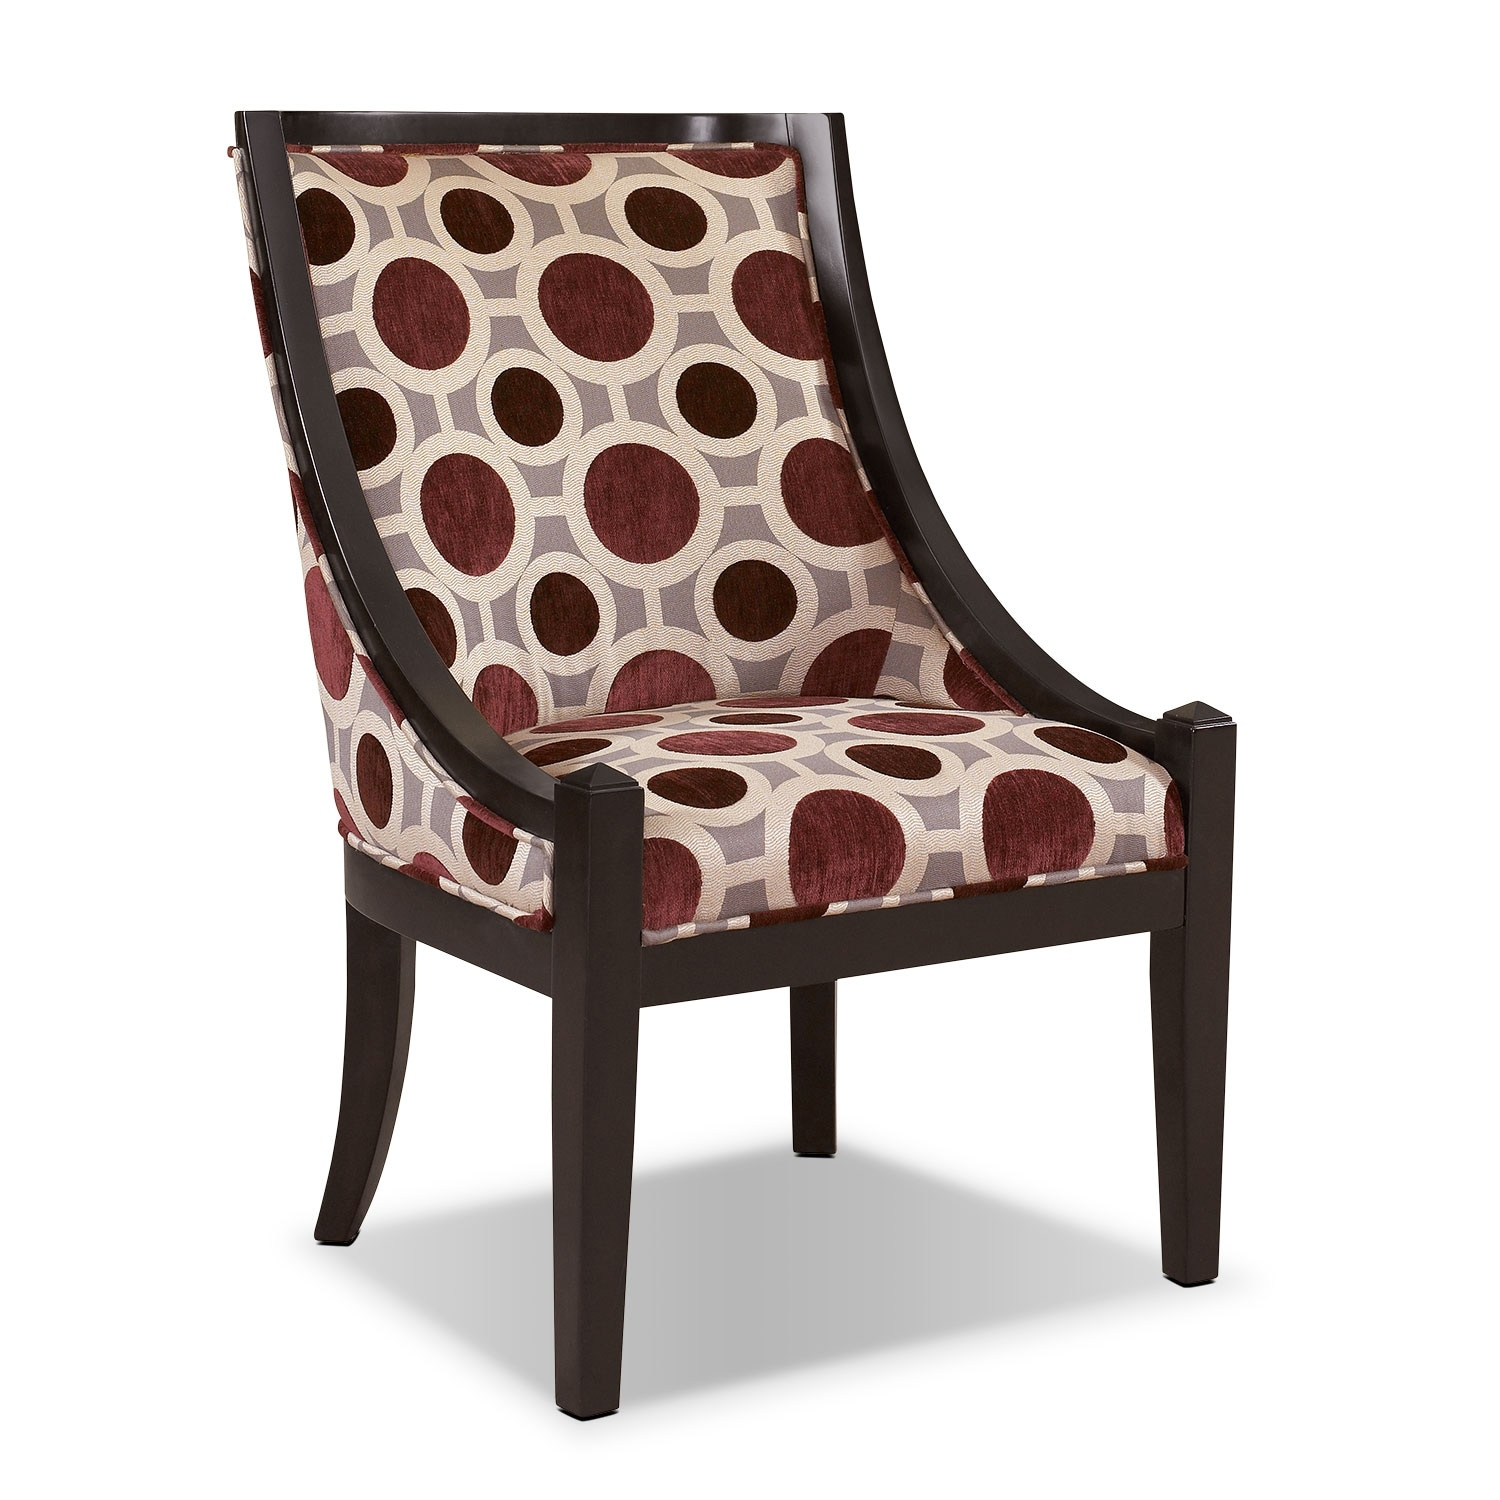 Callie Accent Chair – Mulberry | American Signature Furniture Regarding Callie Sofa Chairs (Image 3 of 25)